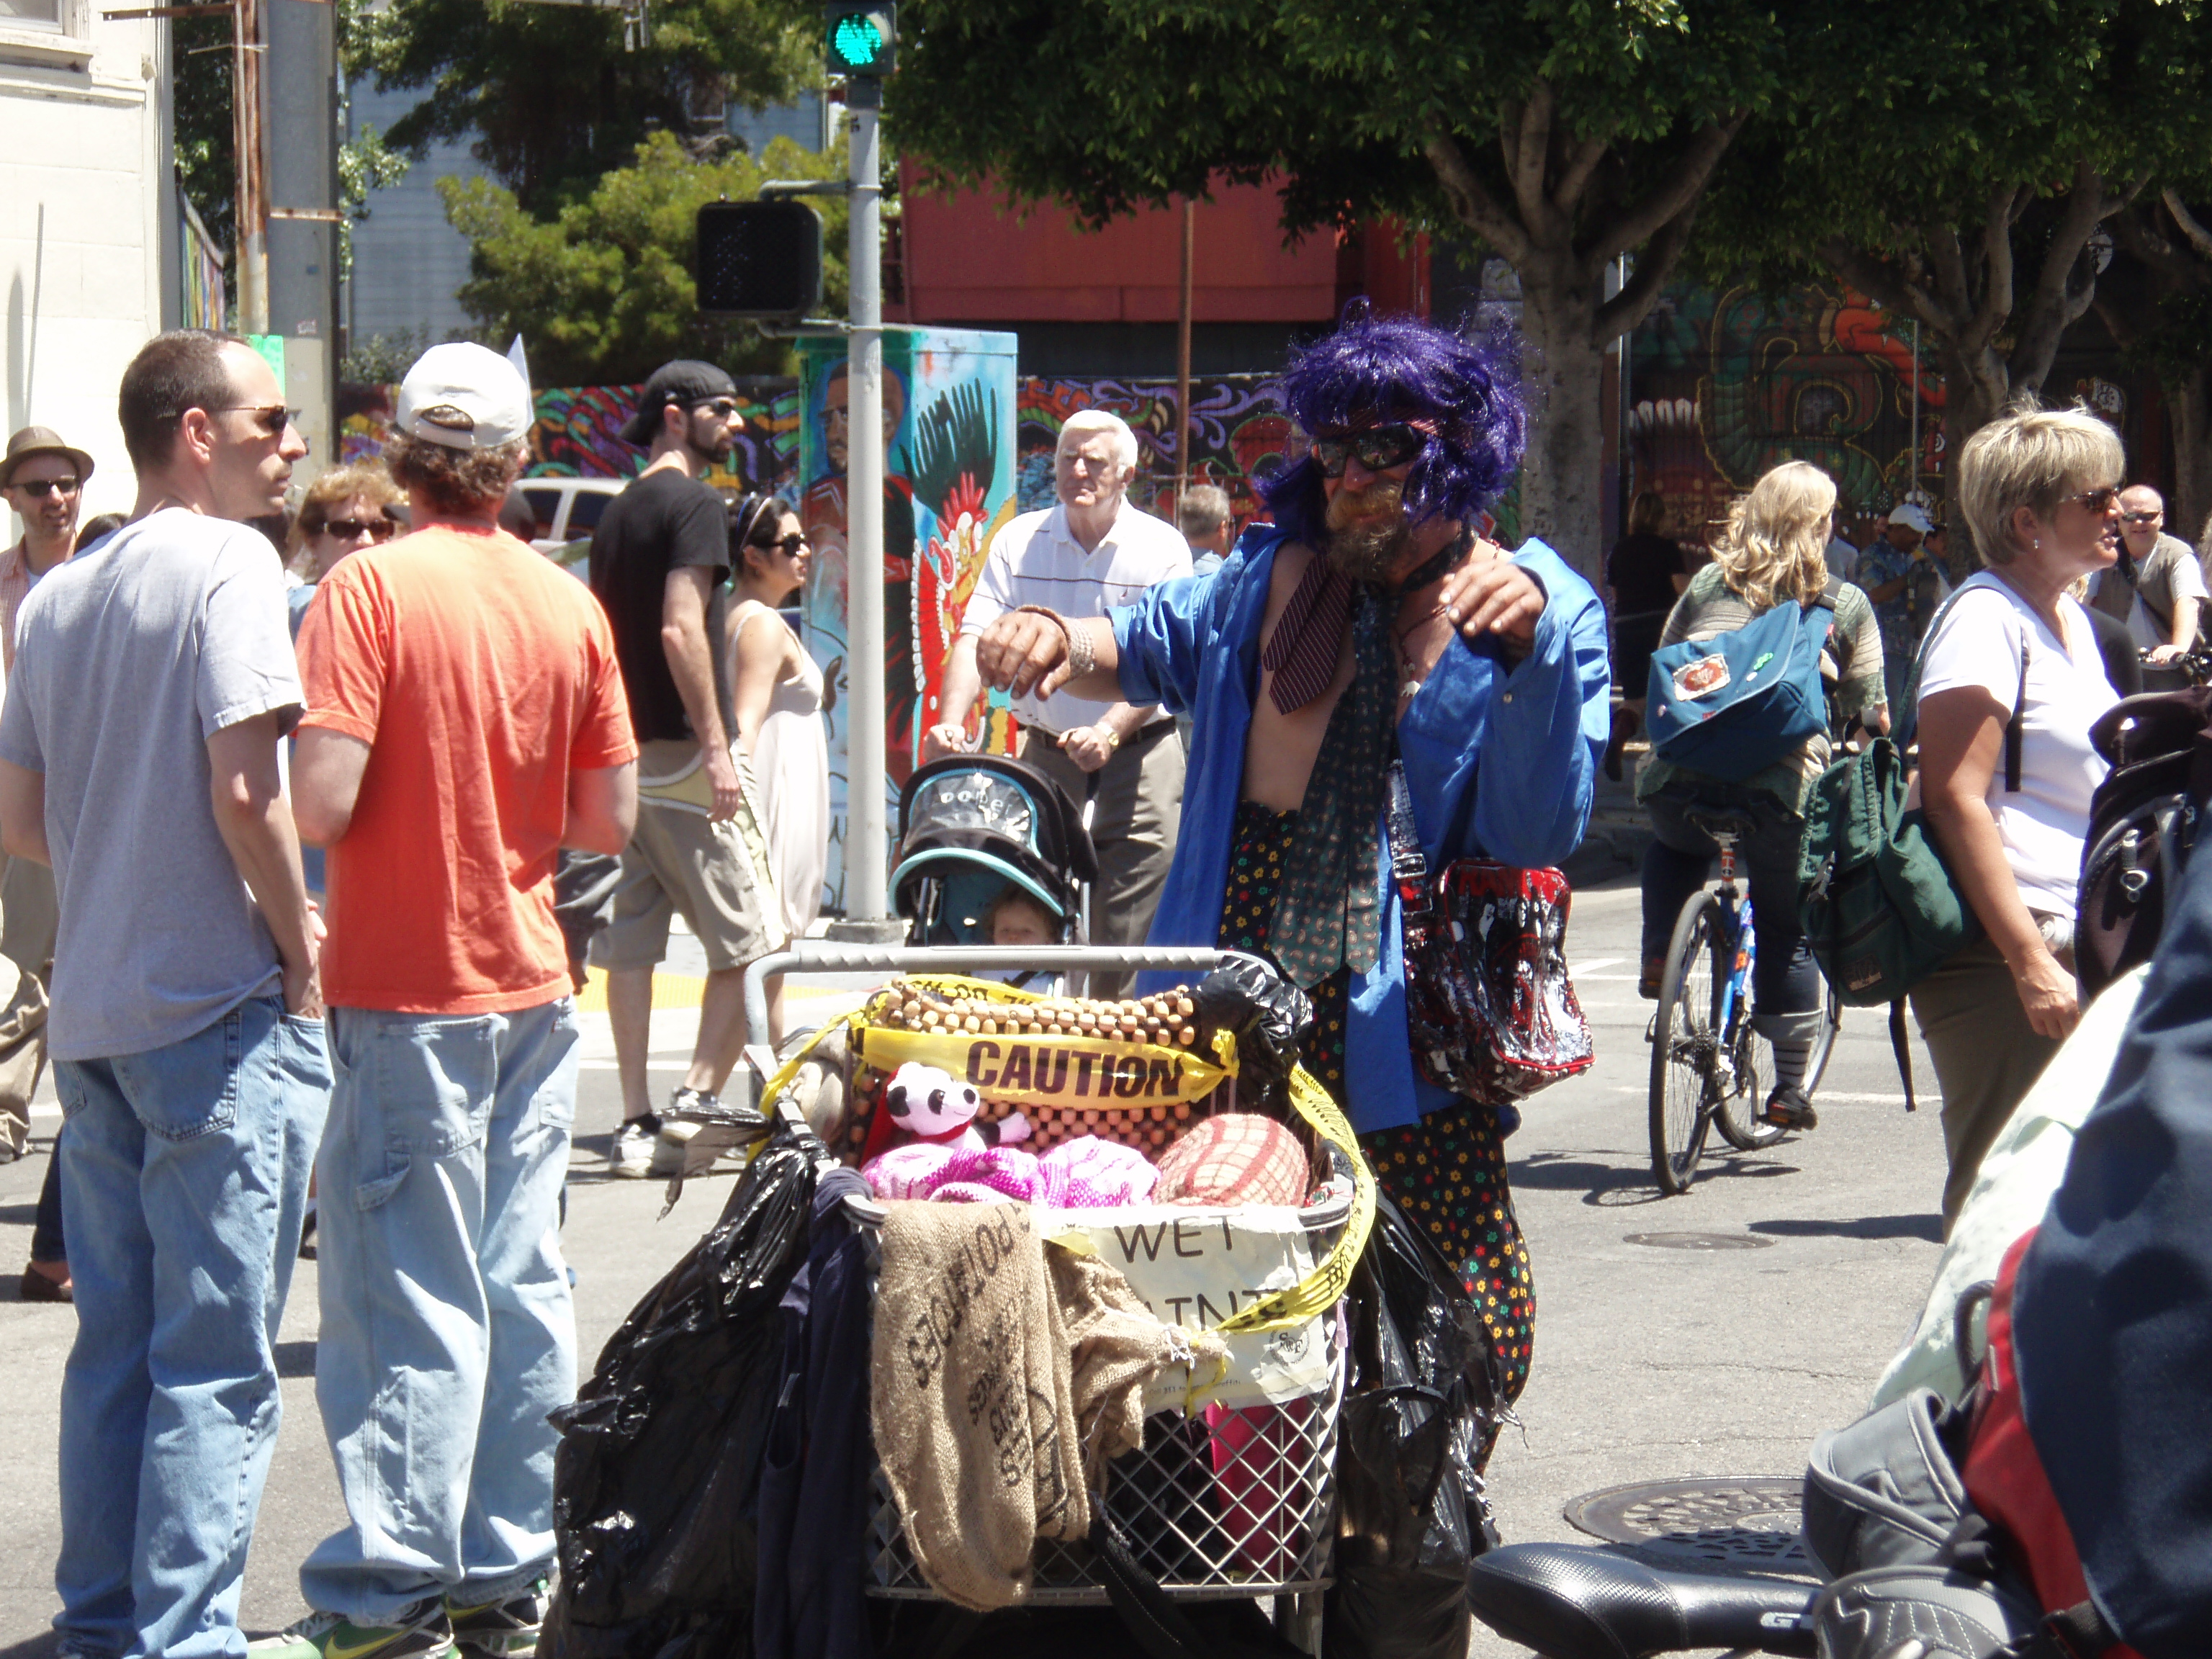 It only took me 3 minutes to find my first scene.  When the Aztec dance demo was going on, this <i>apparently</i> homeless man decided to start breaking it down.  He danced for a solid 5 minutes.  And what an outfit: purple wig, multiple ties, a plastic Rancid purse, high-waisted poka-dot pants, and a hot pair of shades.  He should be on Fashionist.